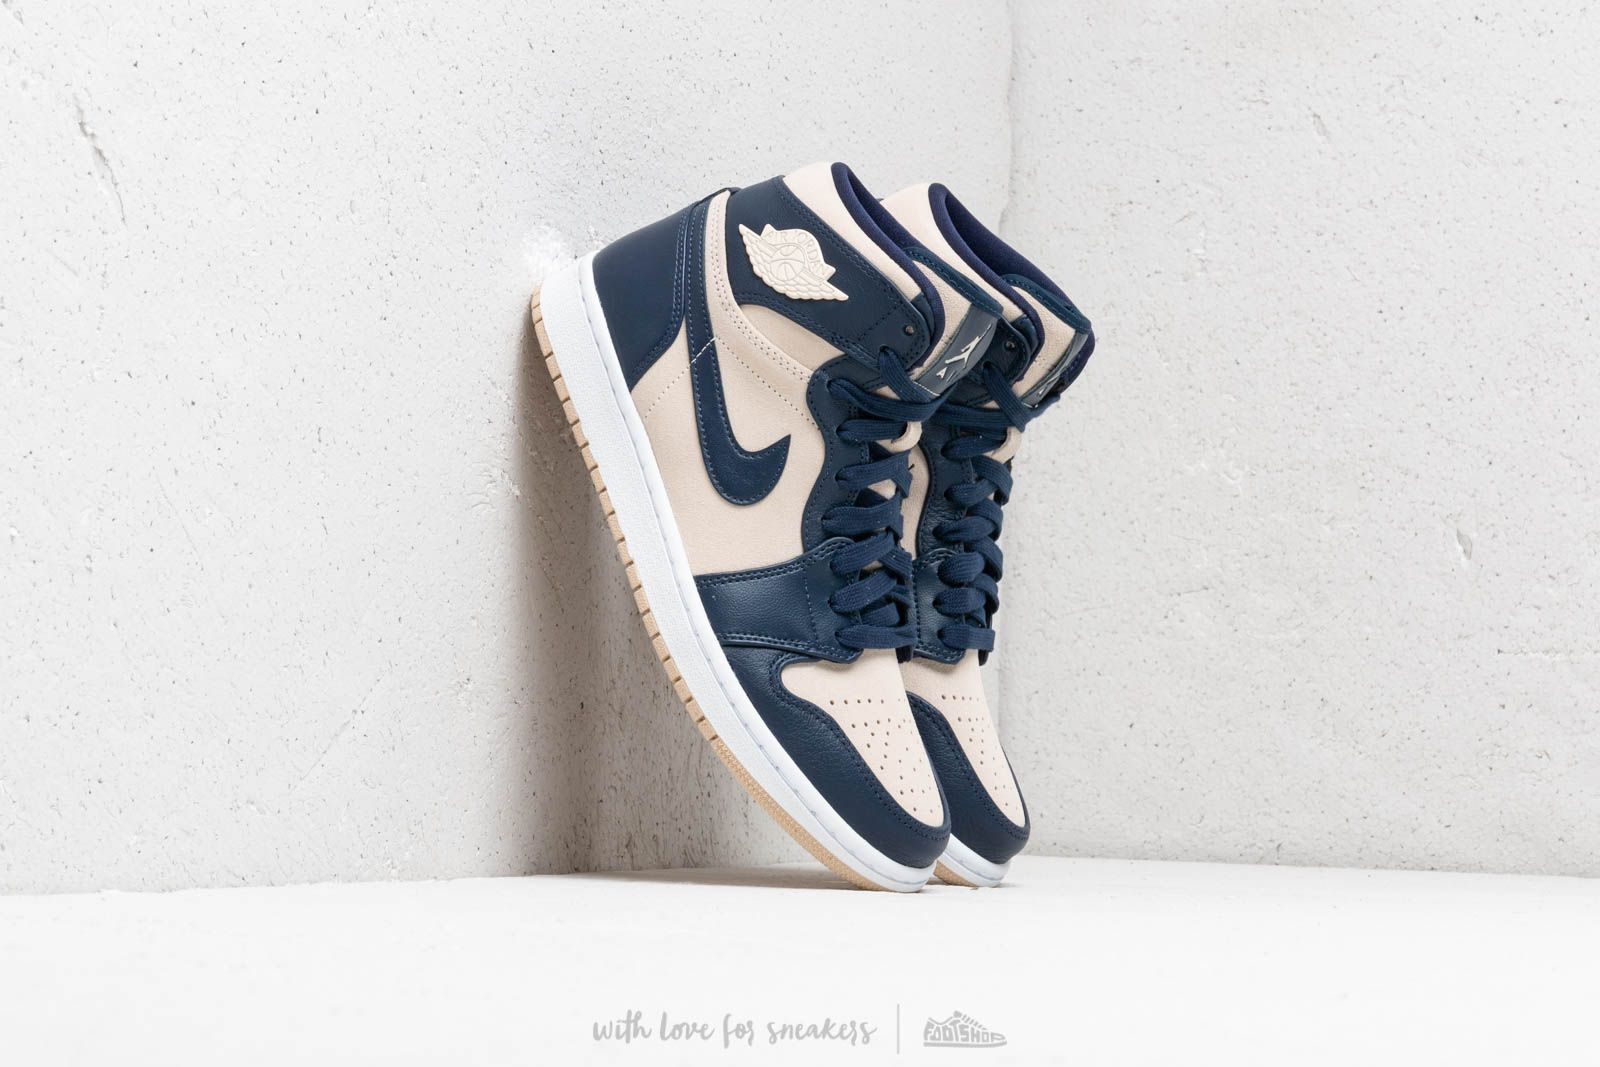 d6ee98d803f Air Jordan Wmns 1 Retro Prem Midnight Navy/ Light Cream-White | Footshop